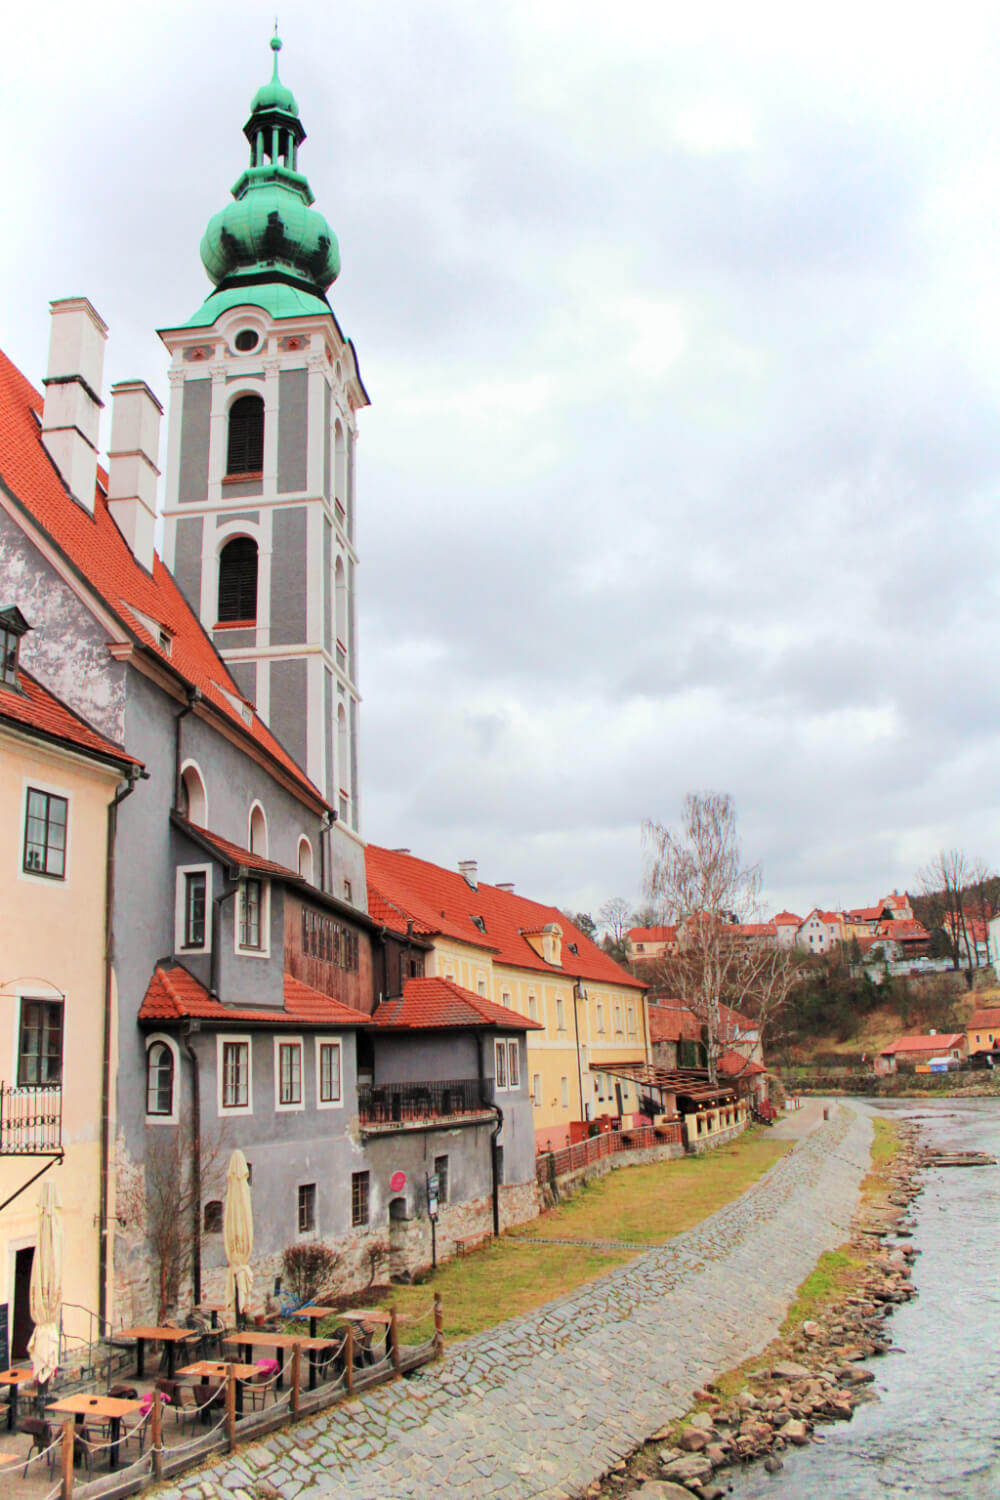 The Castle Tower and the river in Cesky Krumlov, Czech Republic.